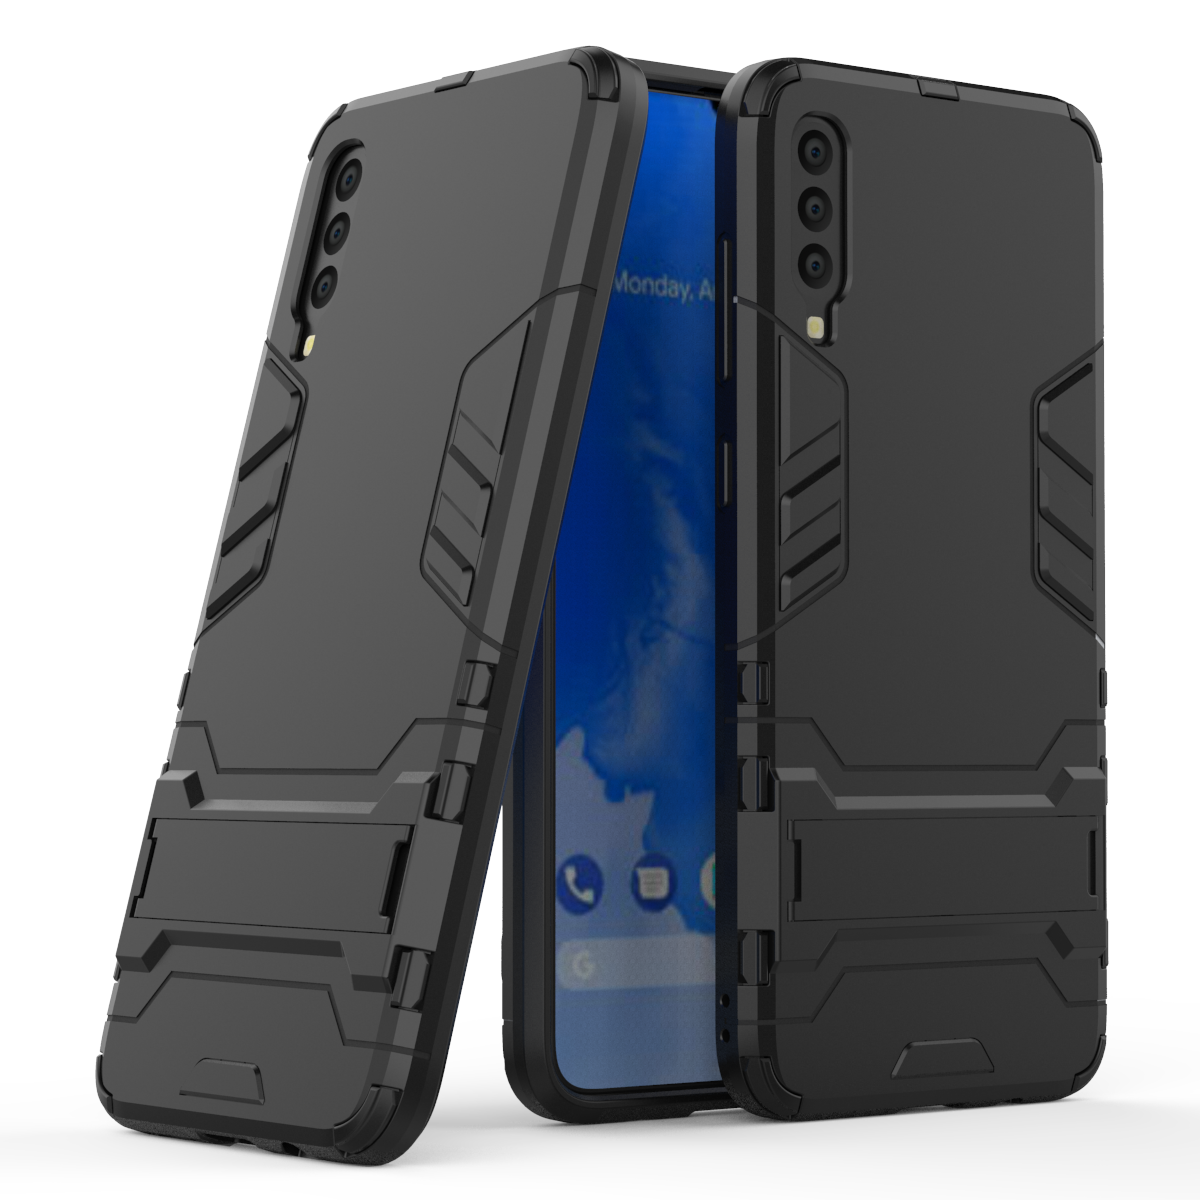 3D <font><b>Shockproof</b></font> Armor <font><b>Cases</b></font> For <font><b>Samsung</b></font> <font><b>Galaxy</b></font> A10 <font><b>A20</b></font> Core A30 A40 A40S A50 A60 A70 TPU Protective Hard Phone Cover Stand Shell image